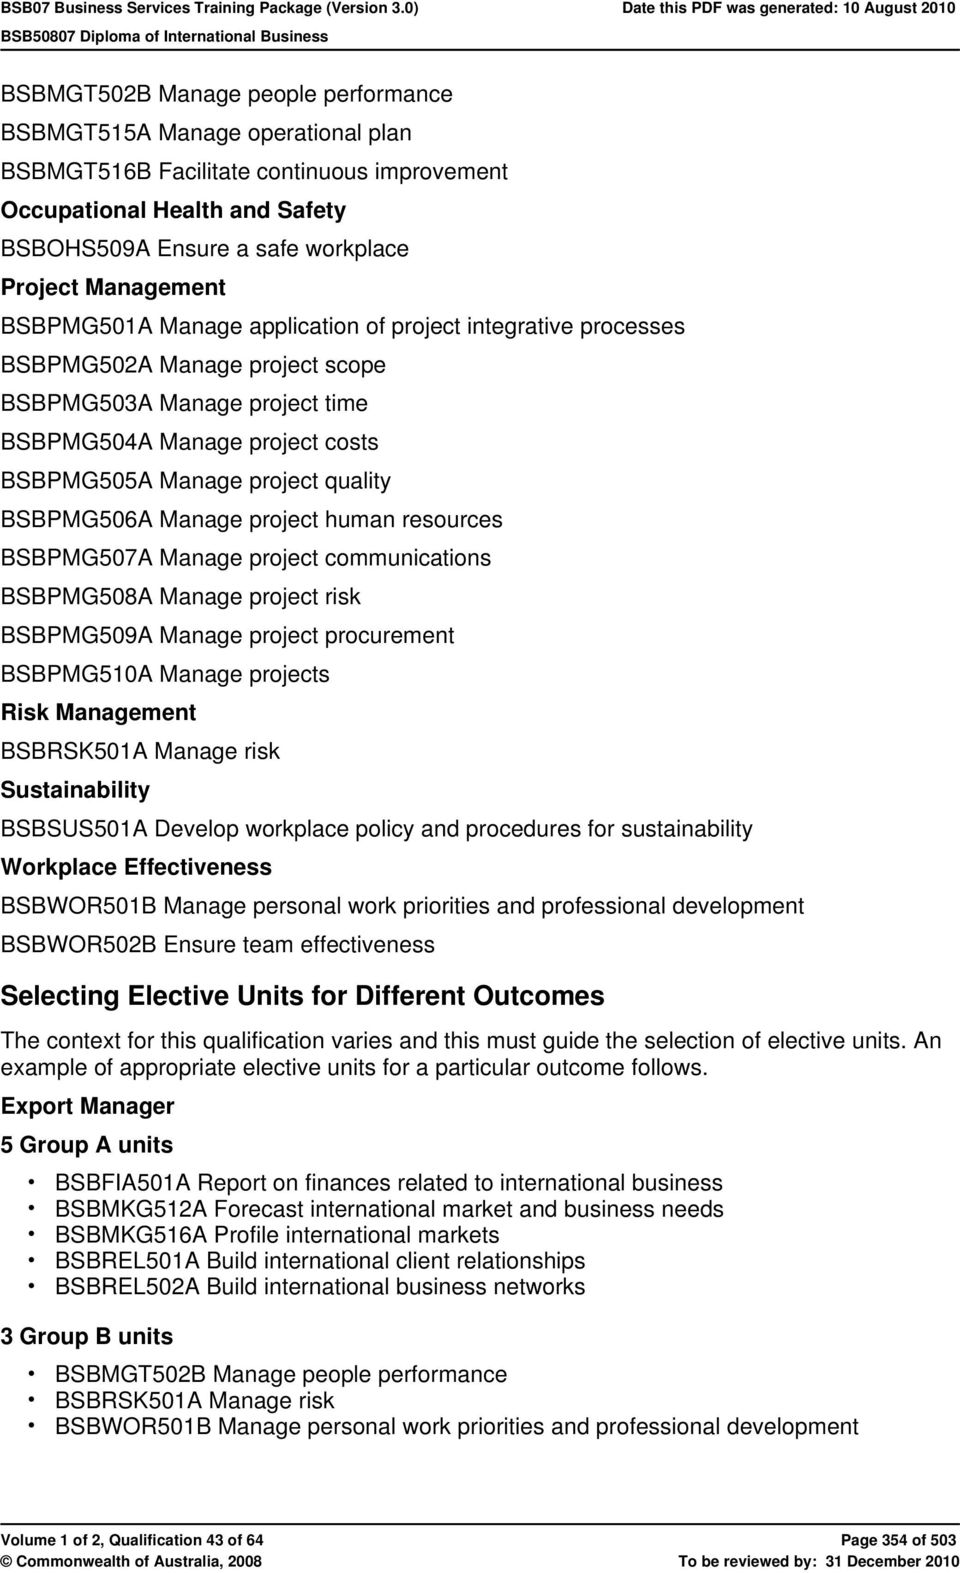 quality BSBPMG506A Manage project human resources BSBPMG507A Manage project communications BSBPMG508A Manage project risk BSBPMG509A Manage project procurement BSBPMG510A Manage projects Risk